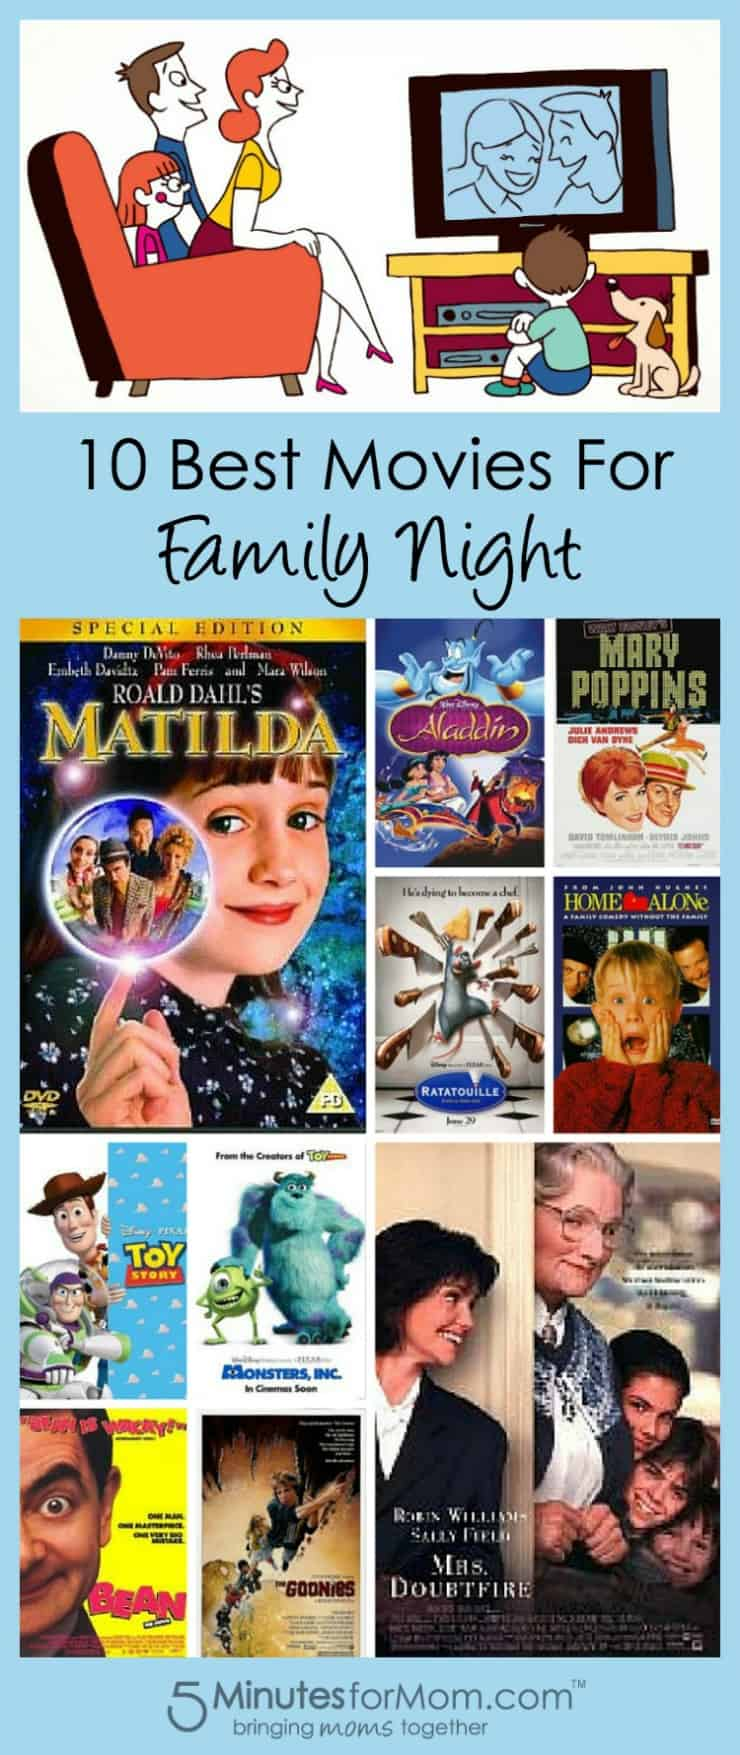 10 Best Movies for Family Nights 5 Minutes for Mom